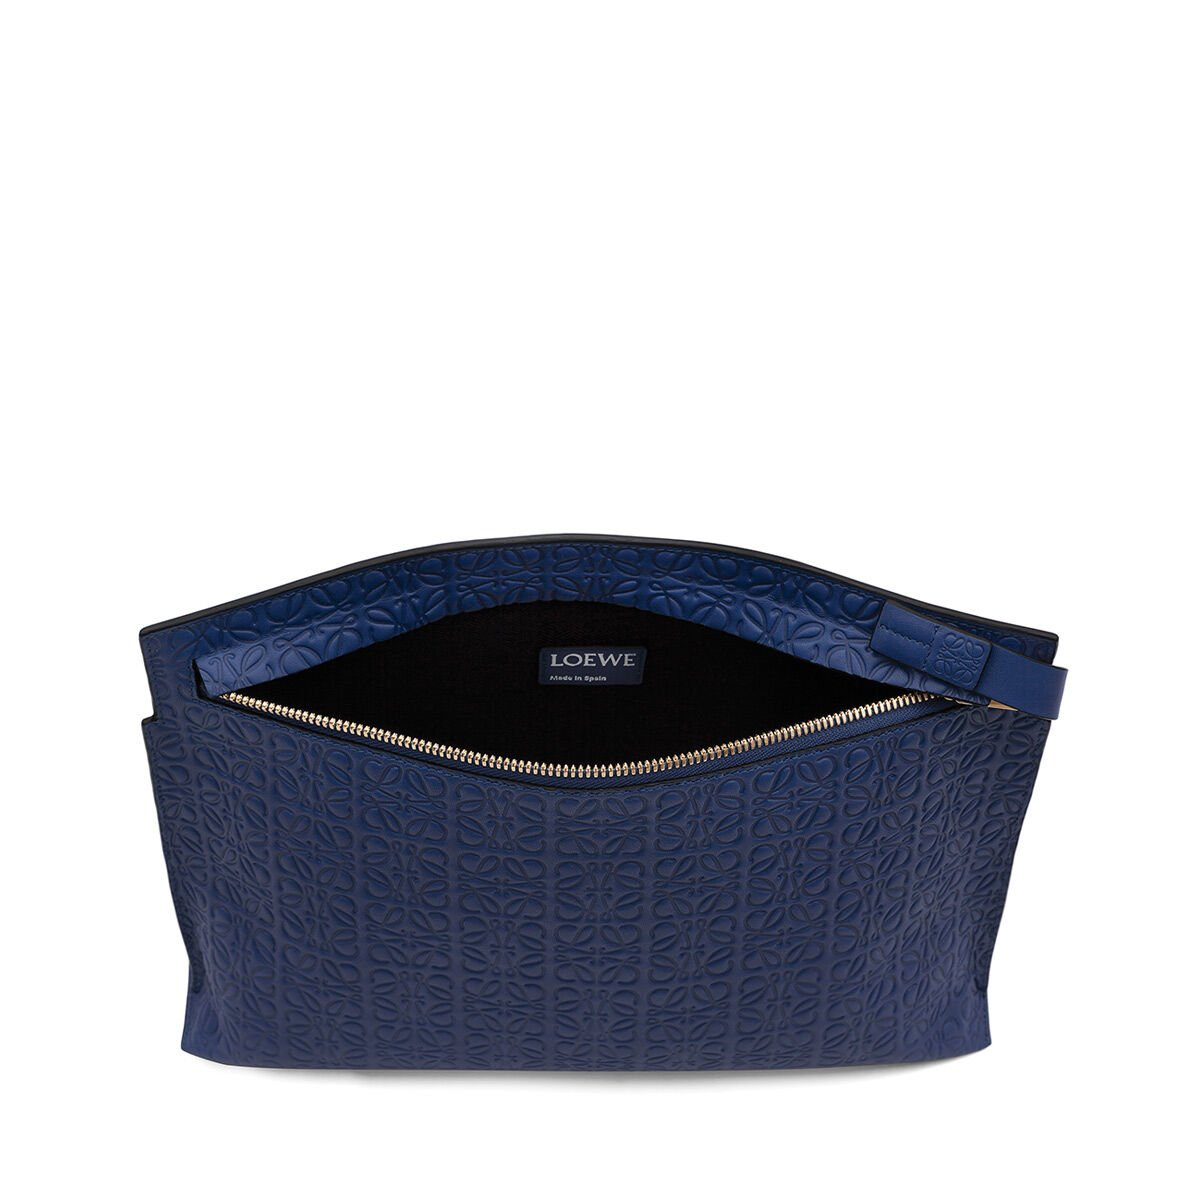 LOEWE T Pouch Repeat Navy Blue all